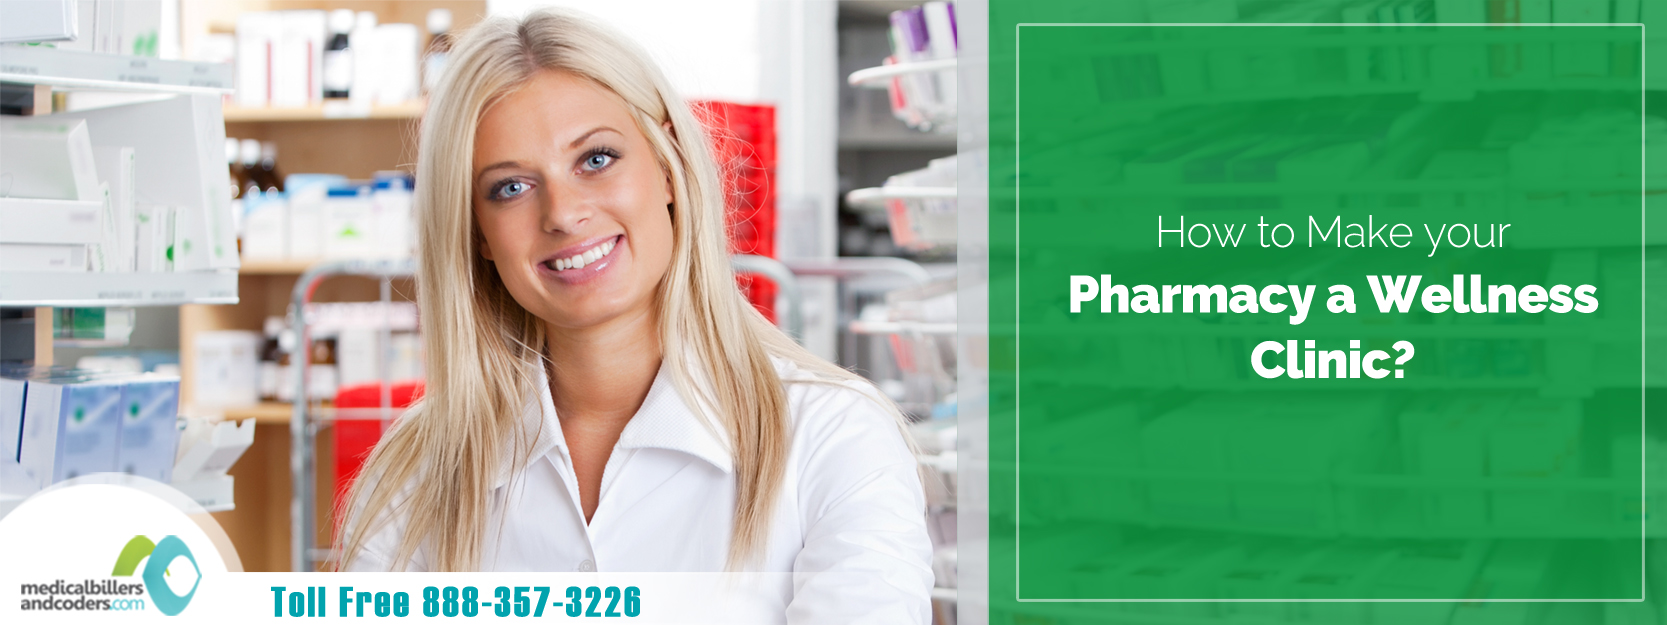 How to Make Your Pharmacy a Wellness Clinic?